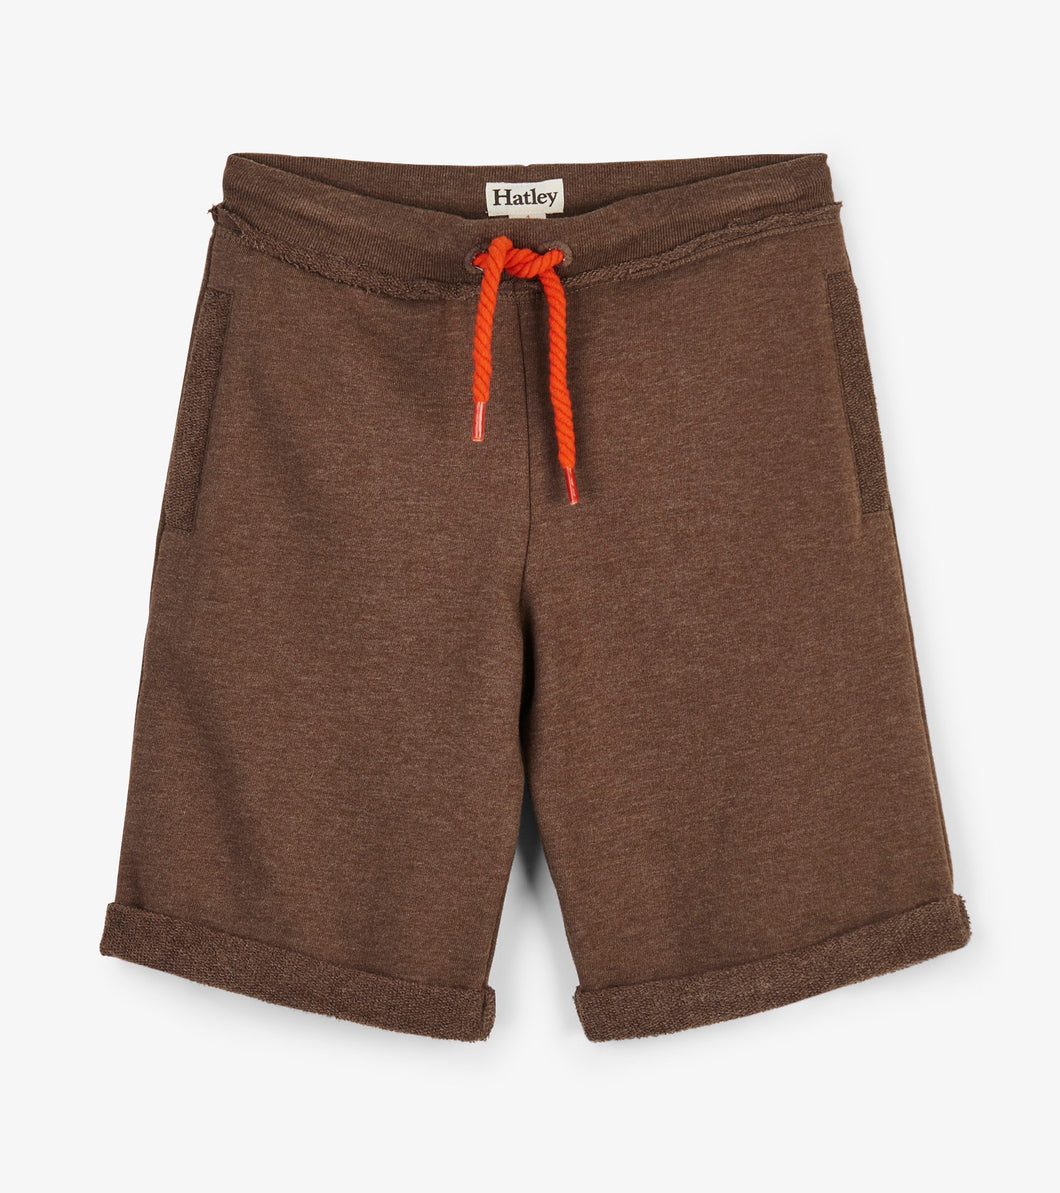 Hatley brown rolled Bermuda shorts